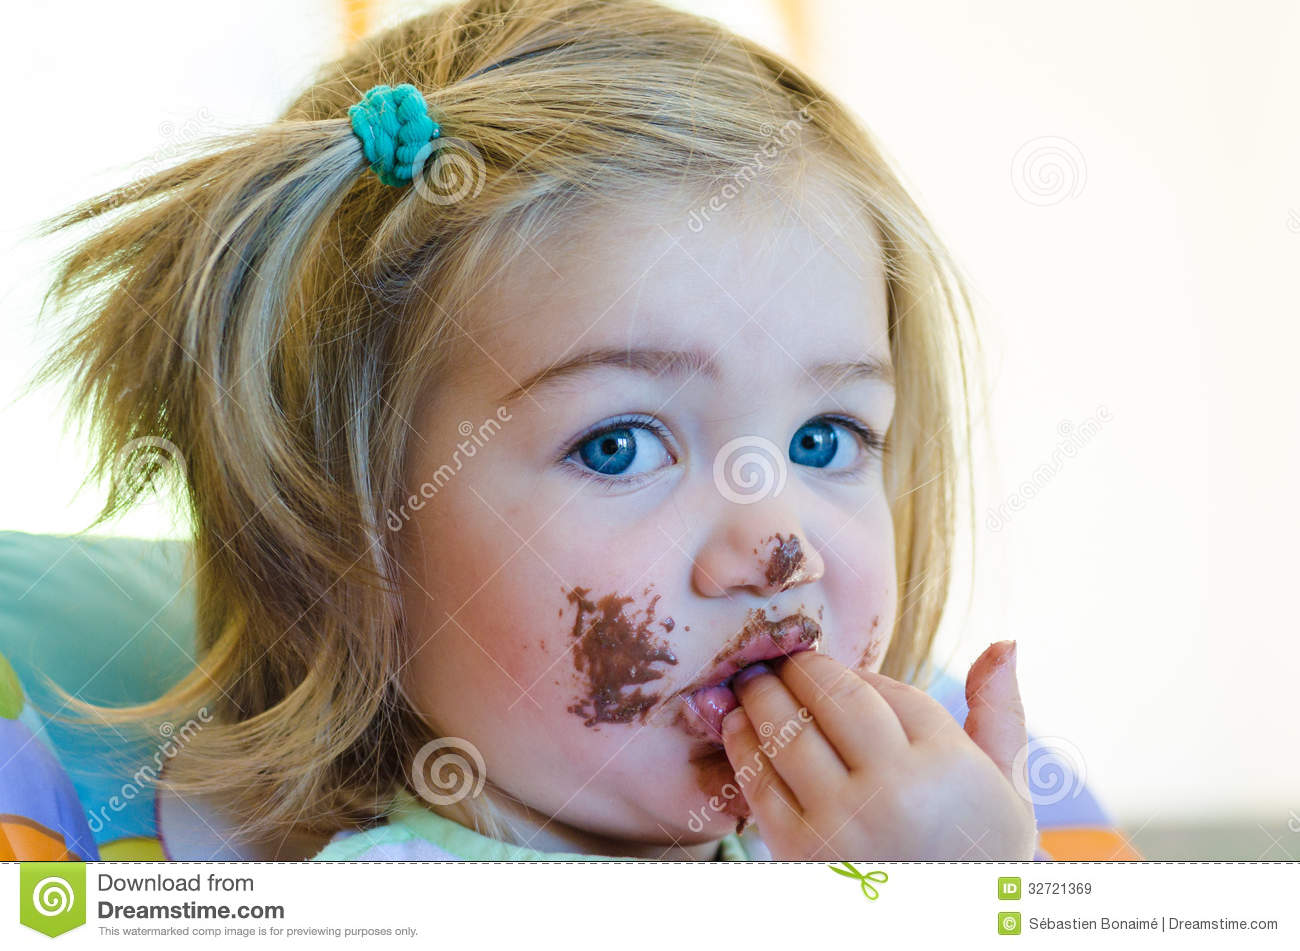 how to stop eating chocolate when stressed